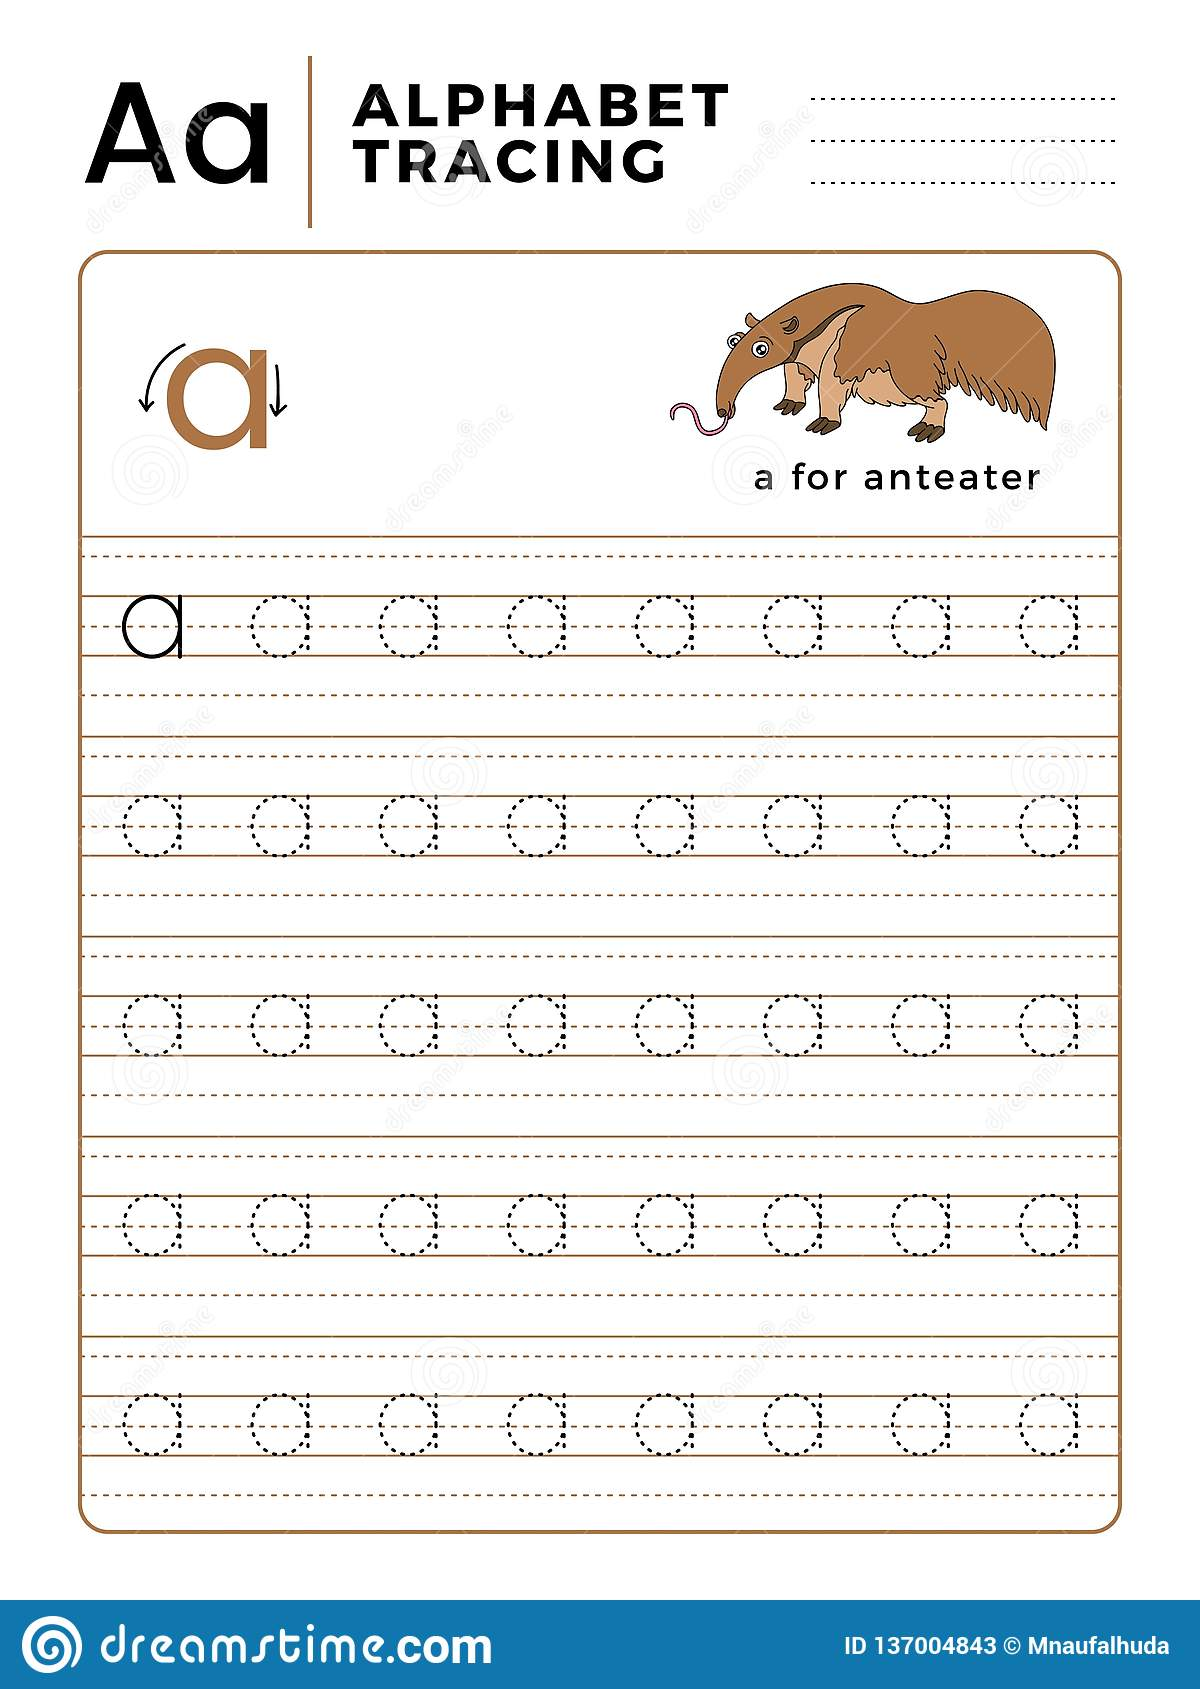 Letter A Alphabet Tracing Book With Example And Funny Anteater Cartoon Preschool Worksheet For